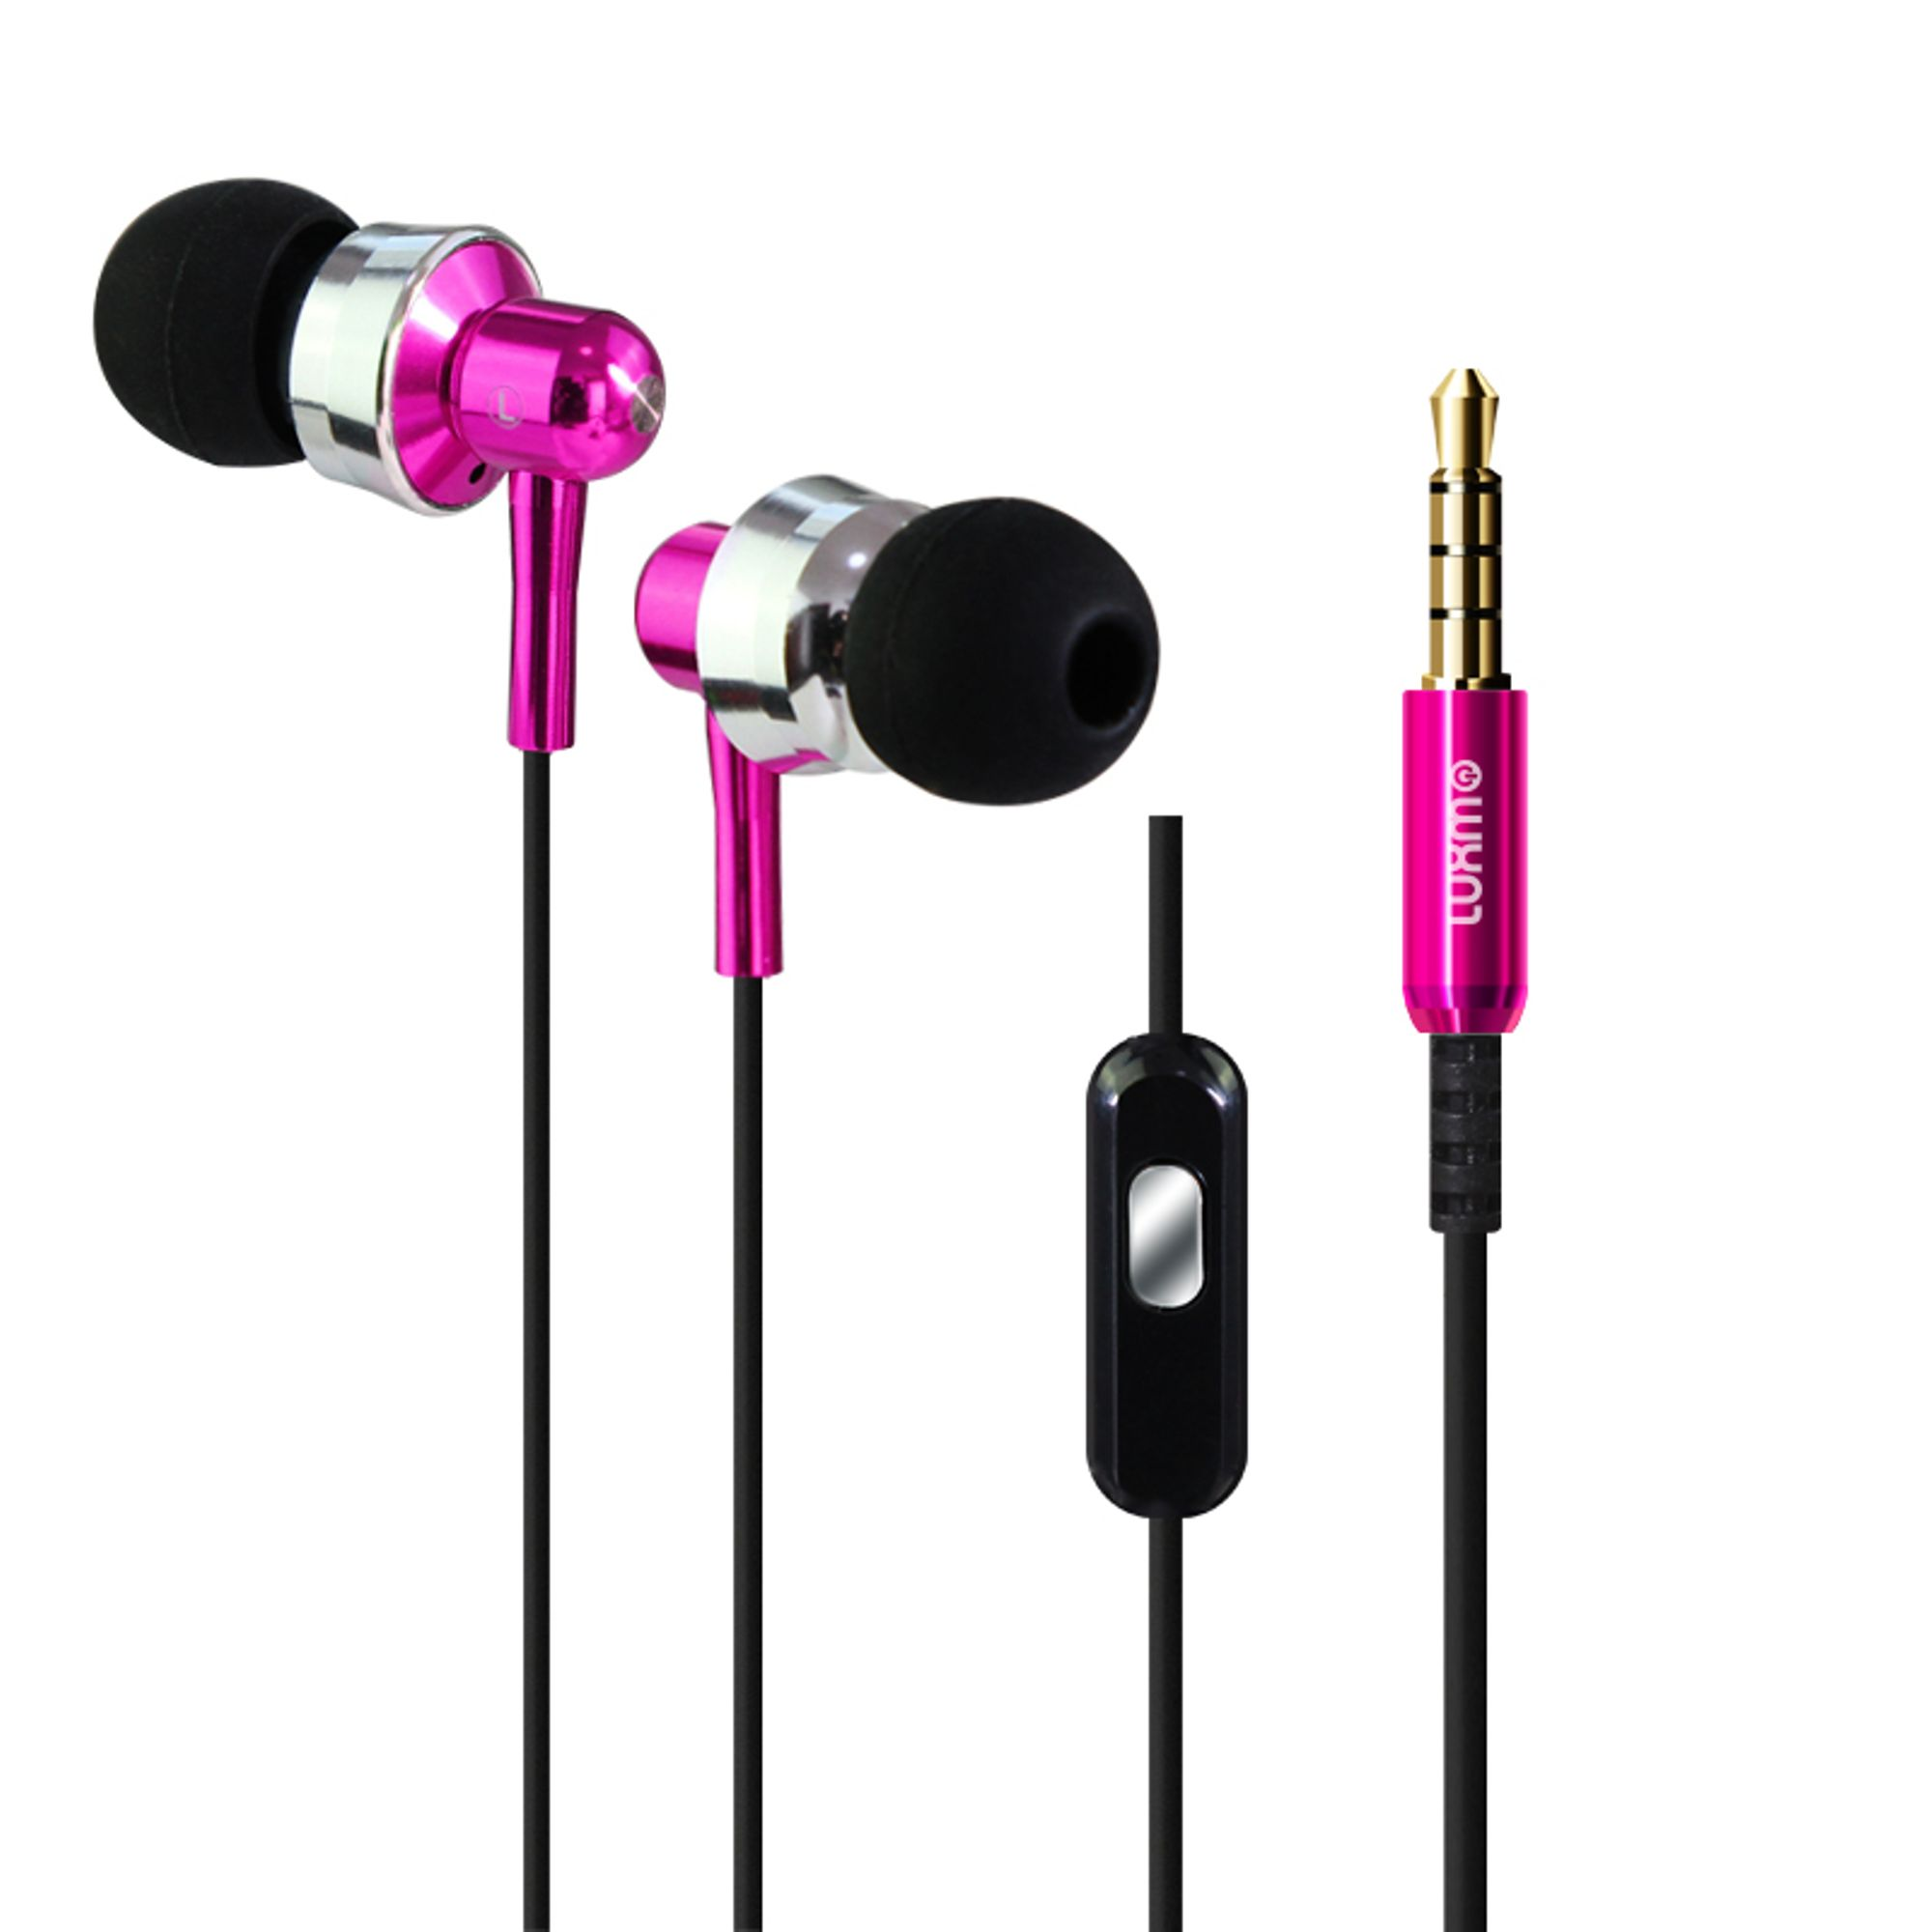 3.5mm Headphones 3.5mm Headset, by Insten Alloy Metal Stereo In-Ear Earbuds Earphone with Microphone Mic Handsfree (Crystal Clear Noise Cancelling) for Apple iPhone Samsung Galaxy Cell phone Universal